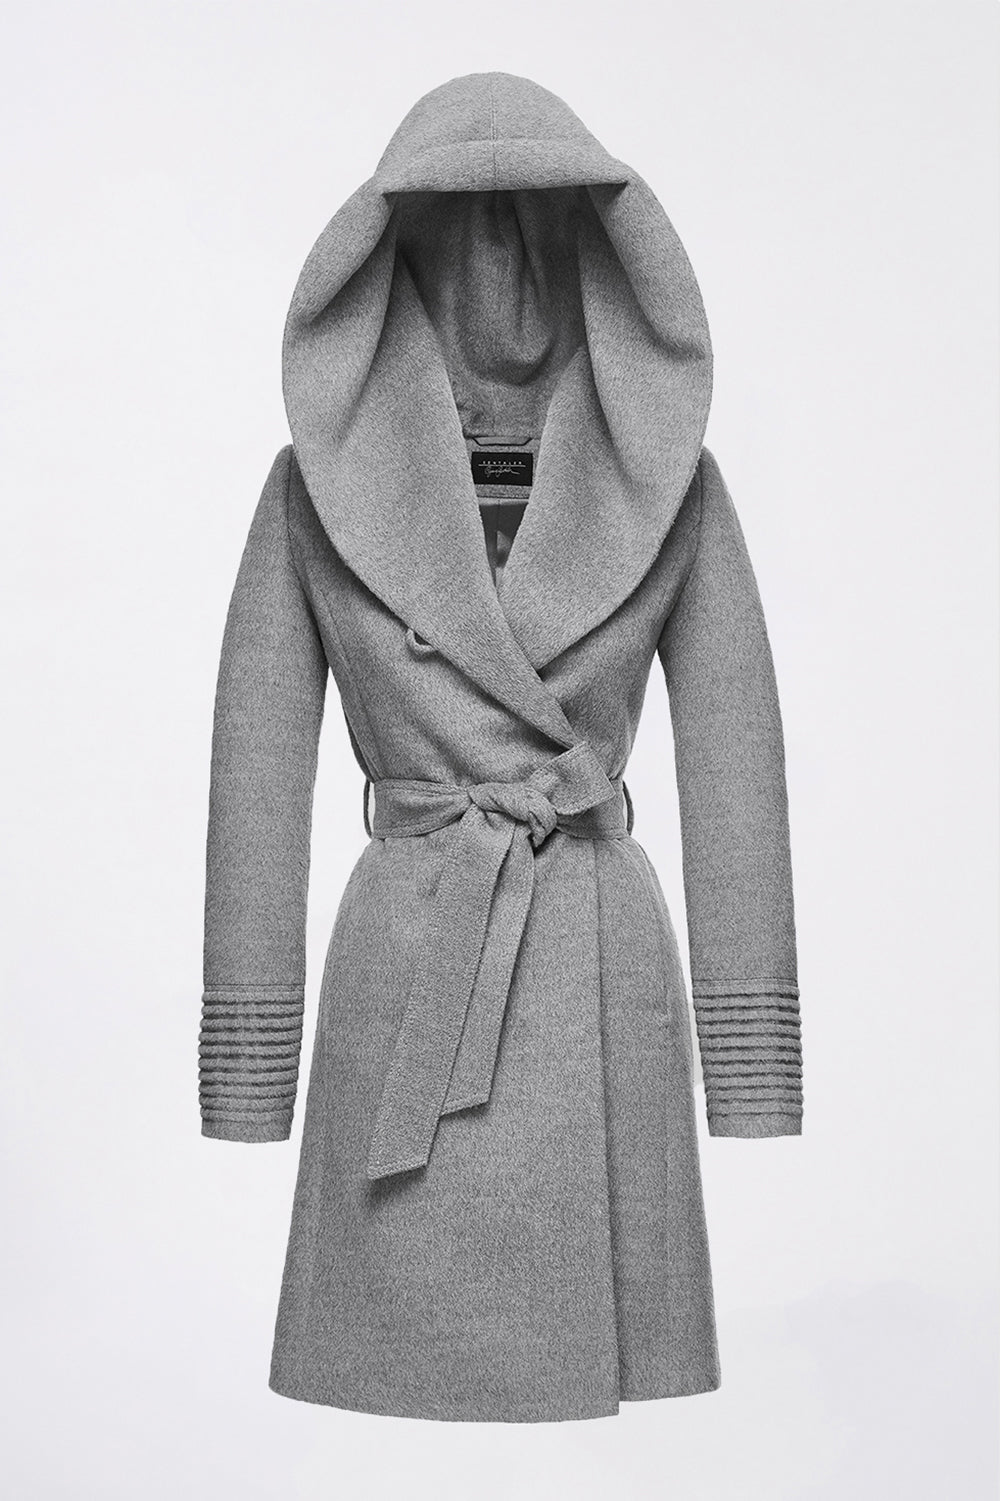 Sentaler Mid Length Hooded Wrap Coat featured in Baby Alpaca and available in Shale Grey. Seen off model.